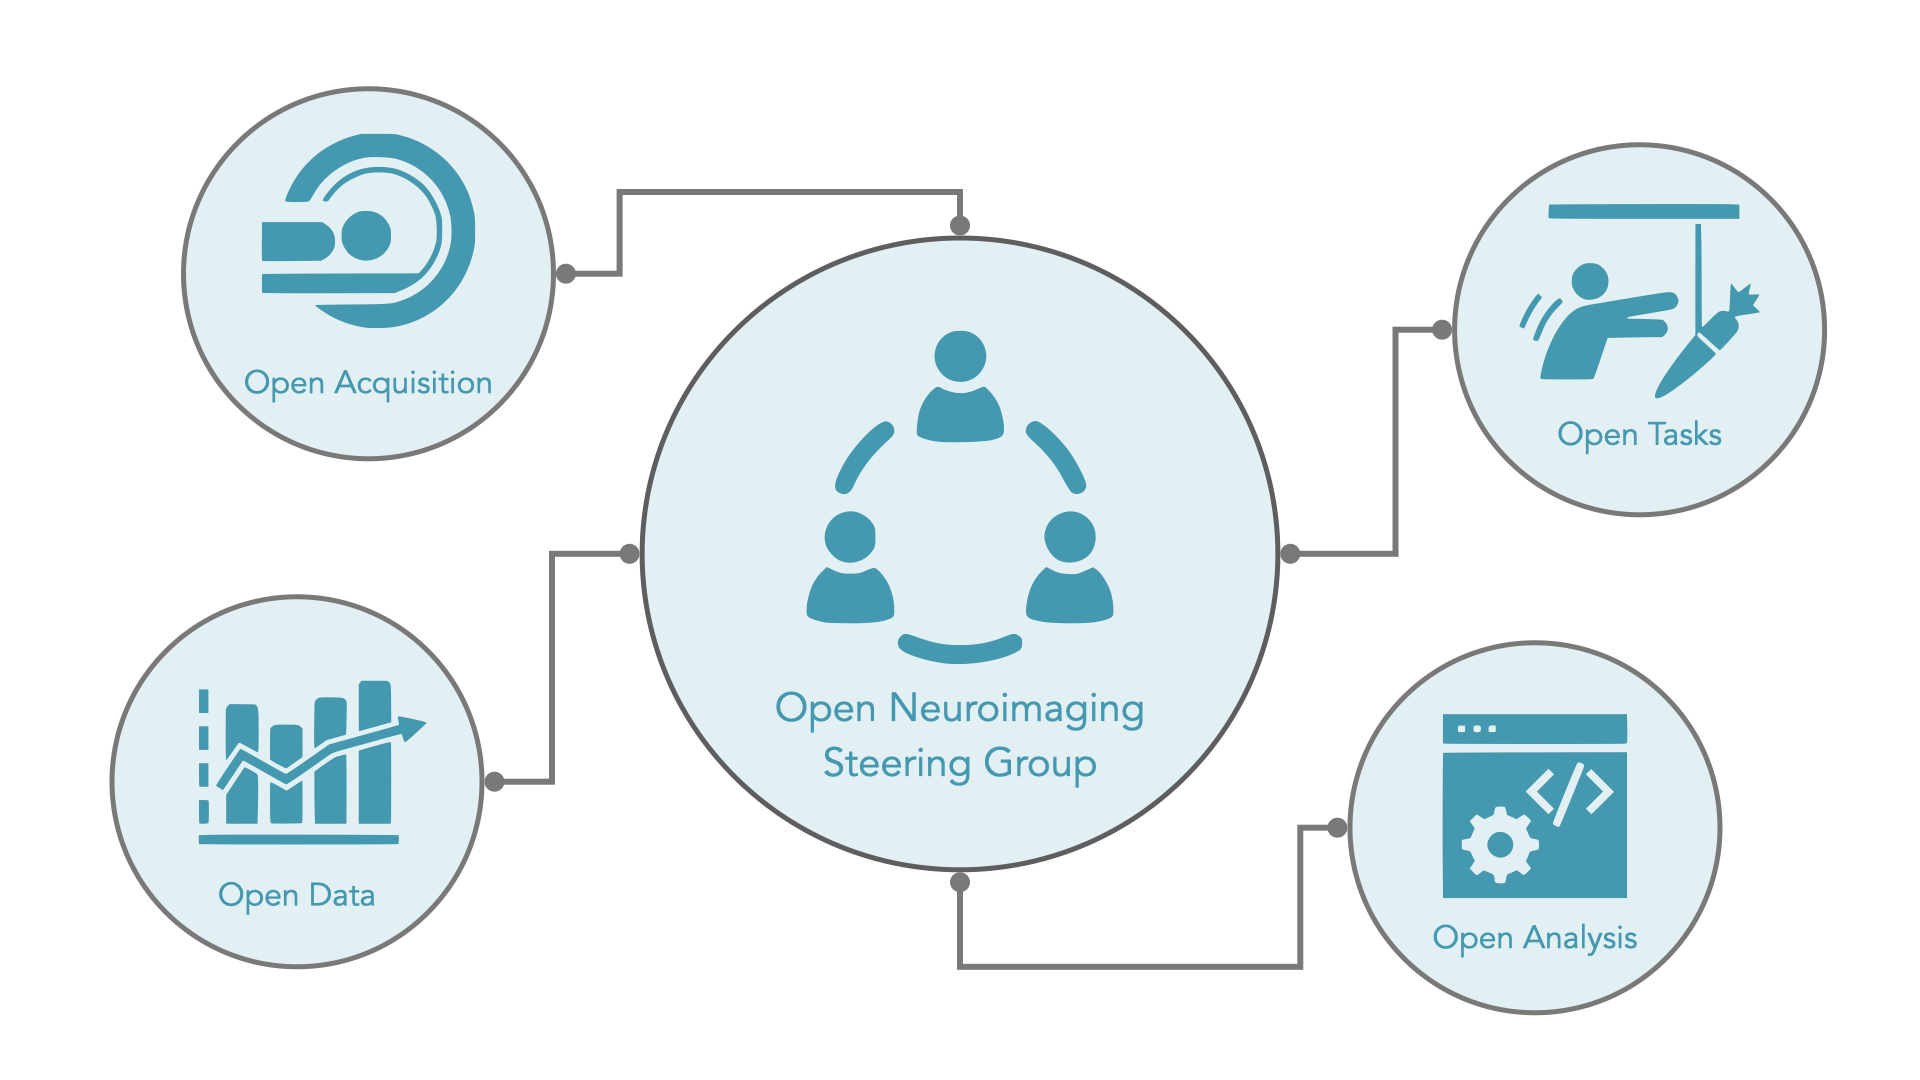 How the Open Neuroimaging steering group is formed. Made up of the Open Acquisitions, Open Data, Open Tasks and Open Analysis groups.